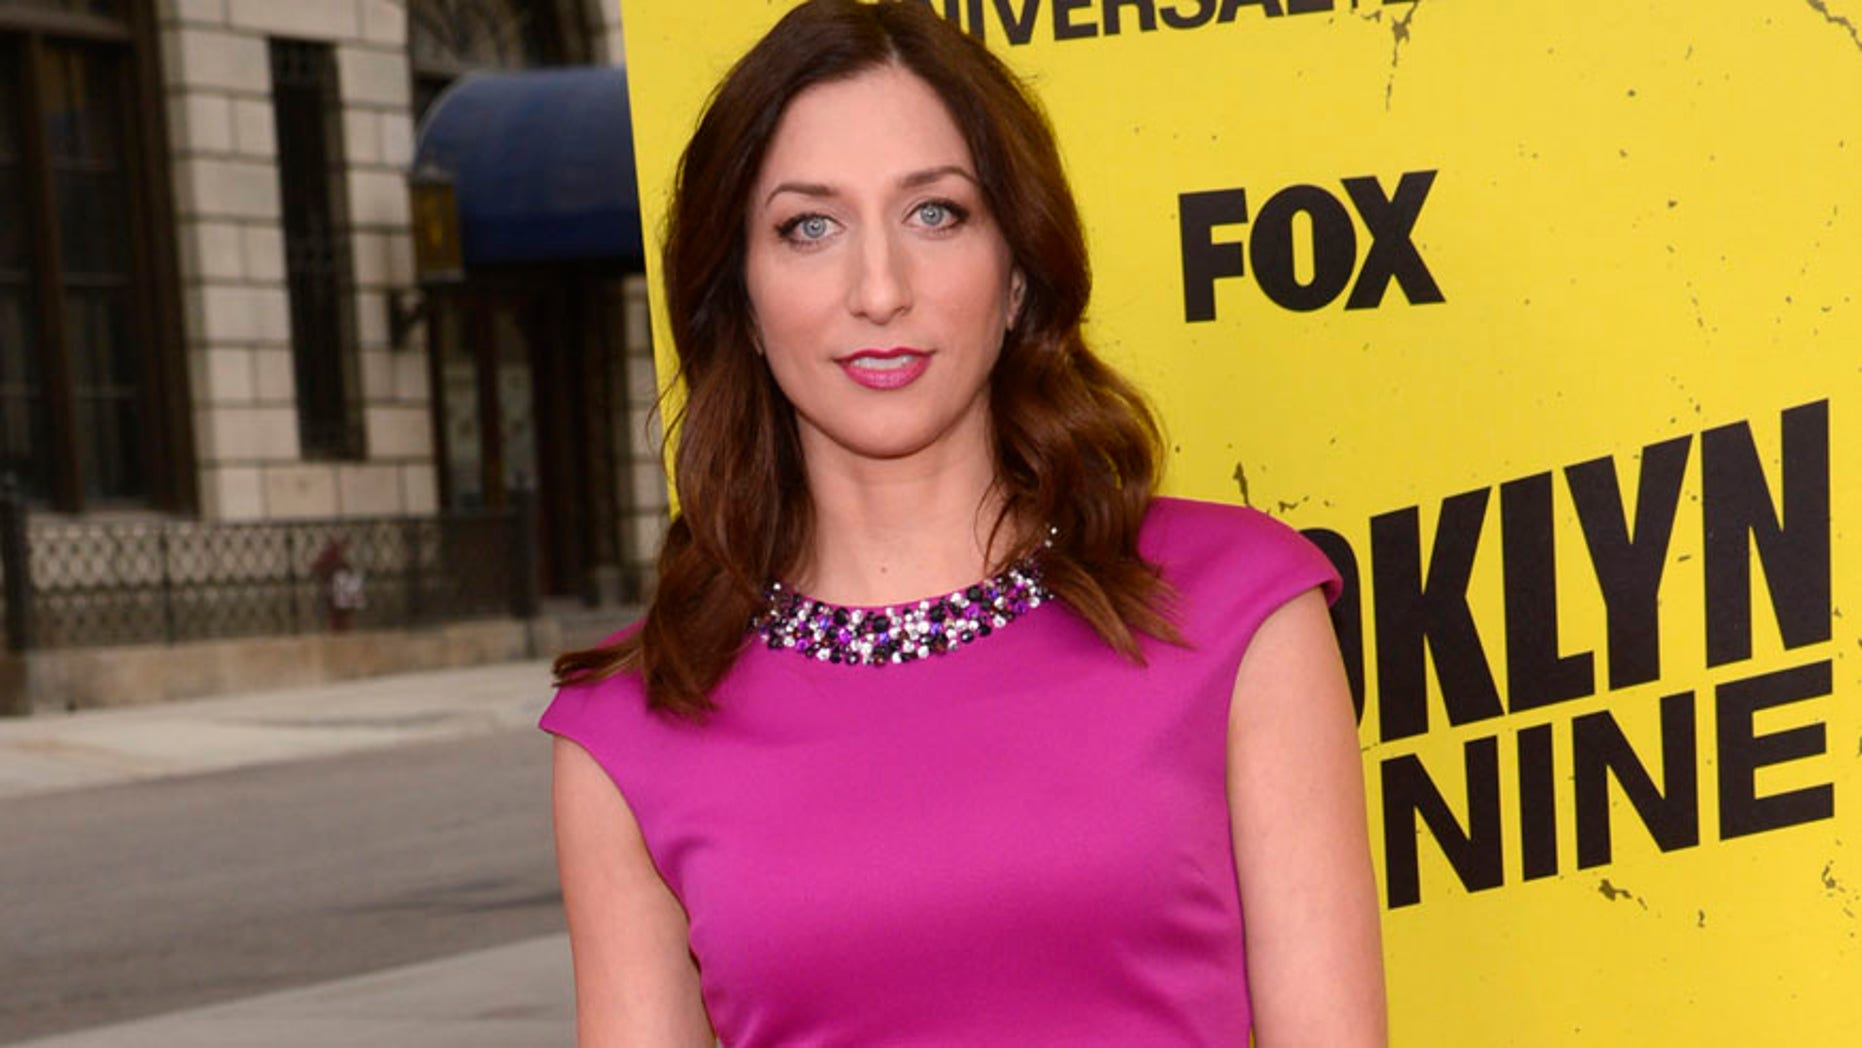 """Cast member Chelsea Peretti attends an event for the television comedy """"Brooklyn Nine-Nine"""" in Los Angeles May 22, 2014. REUTERS/Phil McCarten (UNITED STATES - Tags: ENTERTAINMENT) - RTR3QGRY"""